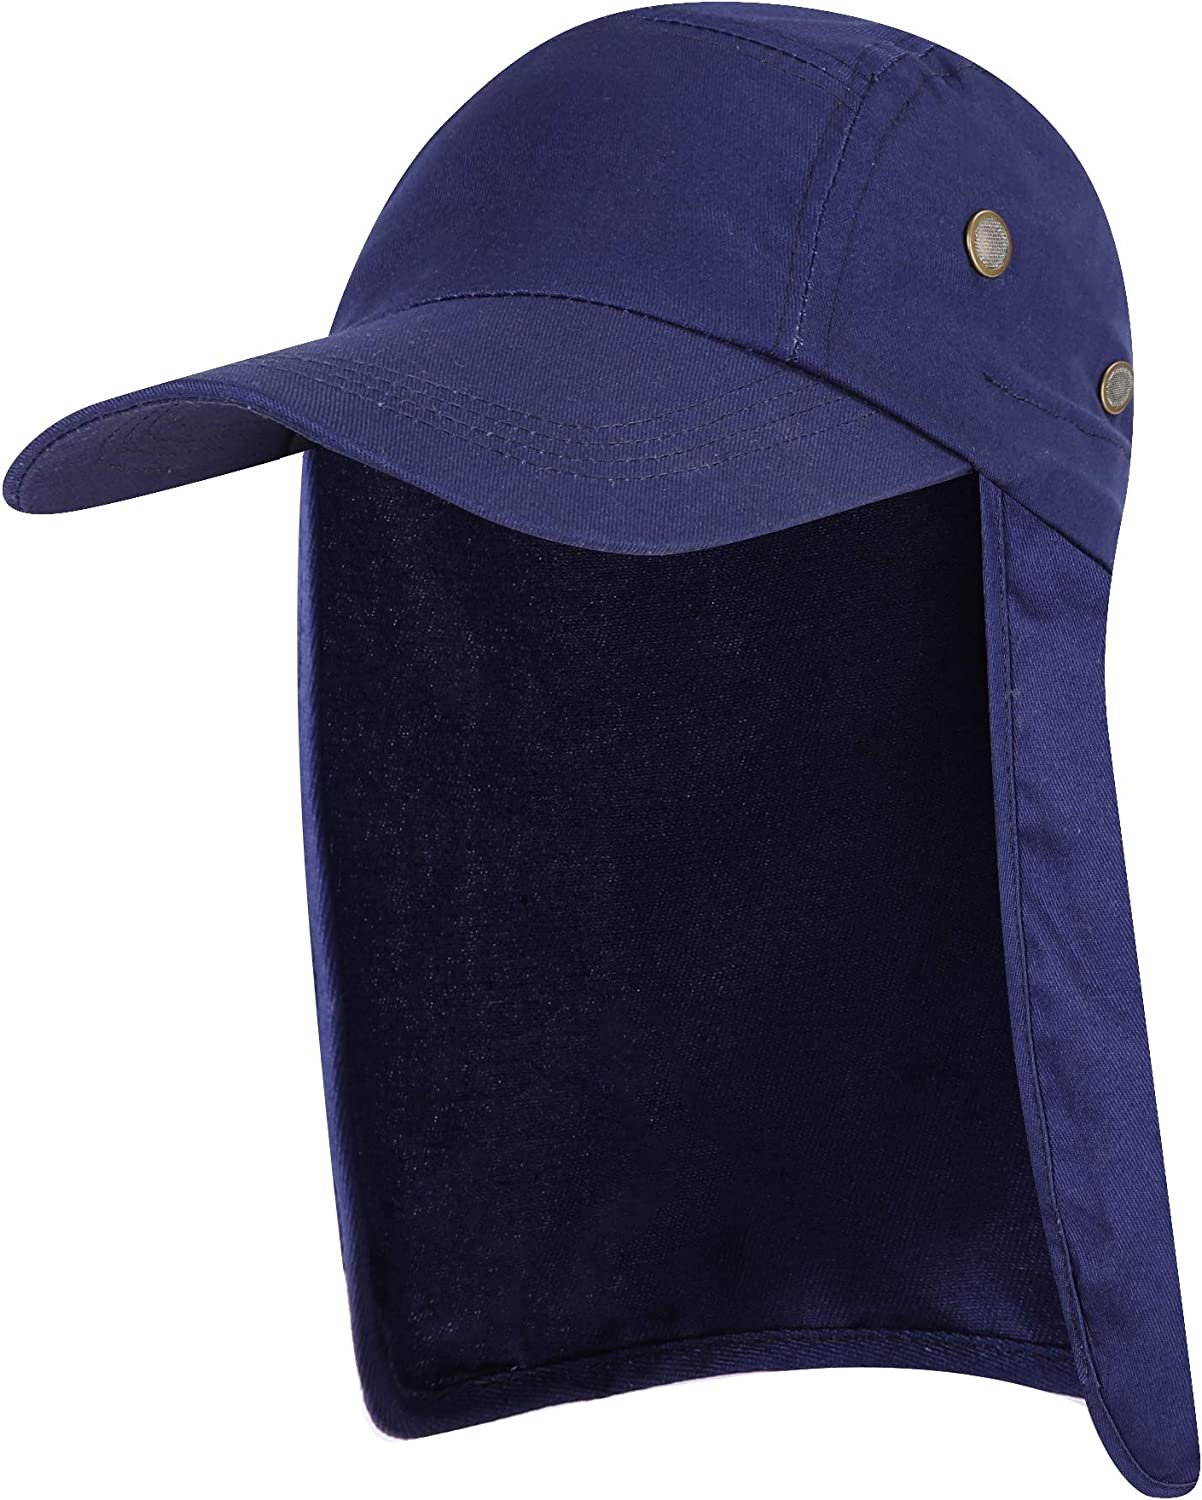 YR.Lover Fishing Flap Hat Women Men Sun Cap with Ear and Neck Flap for Camping, Hiking and Fishing ect